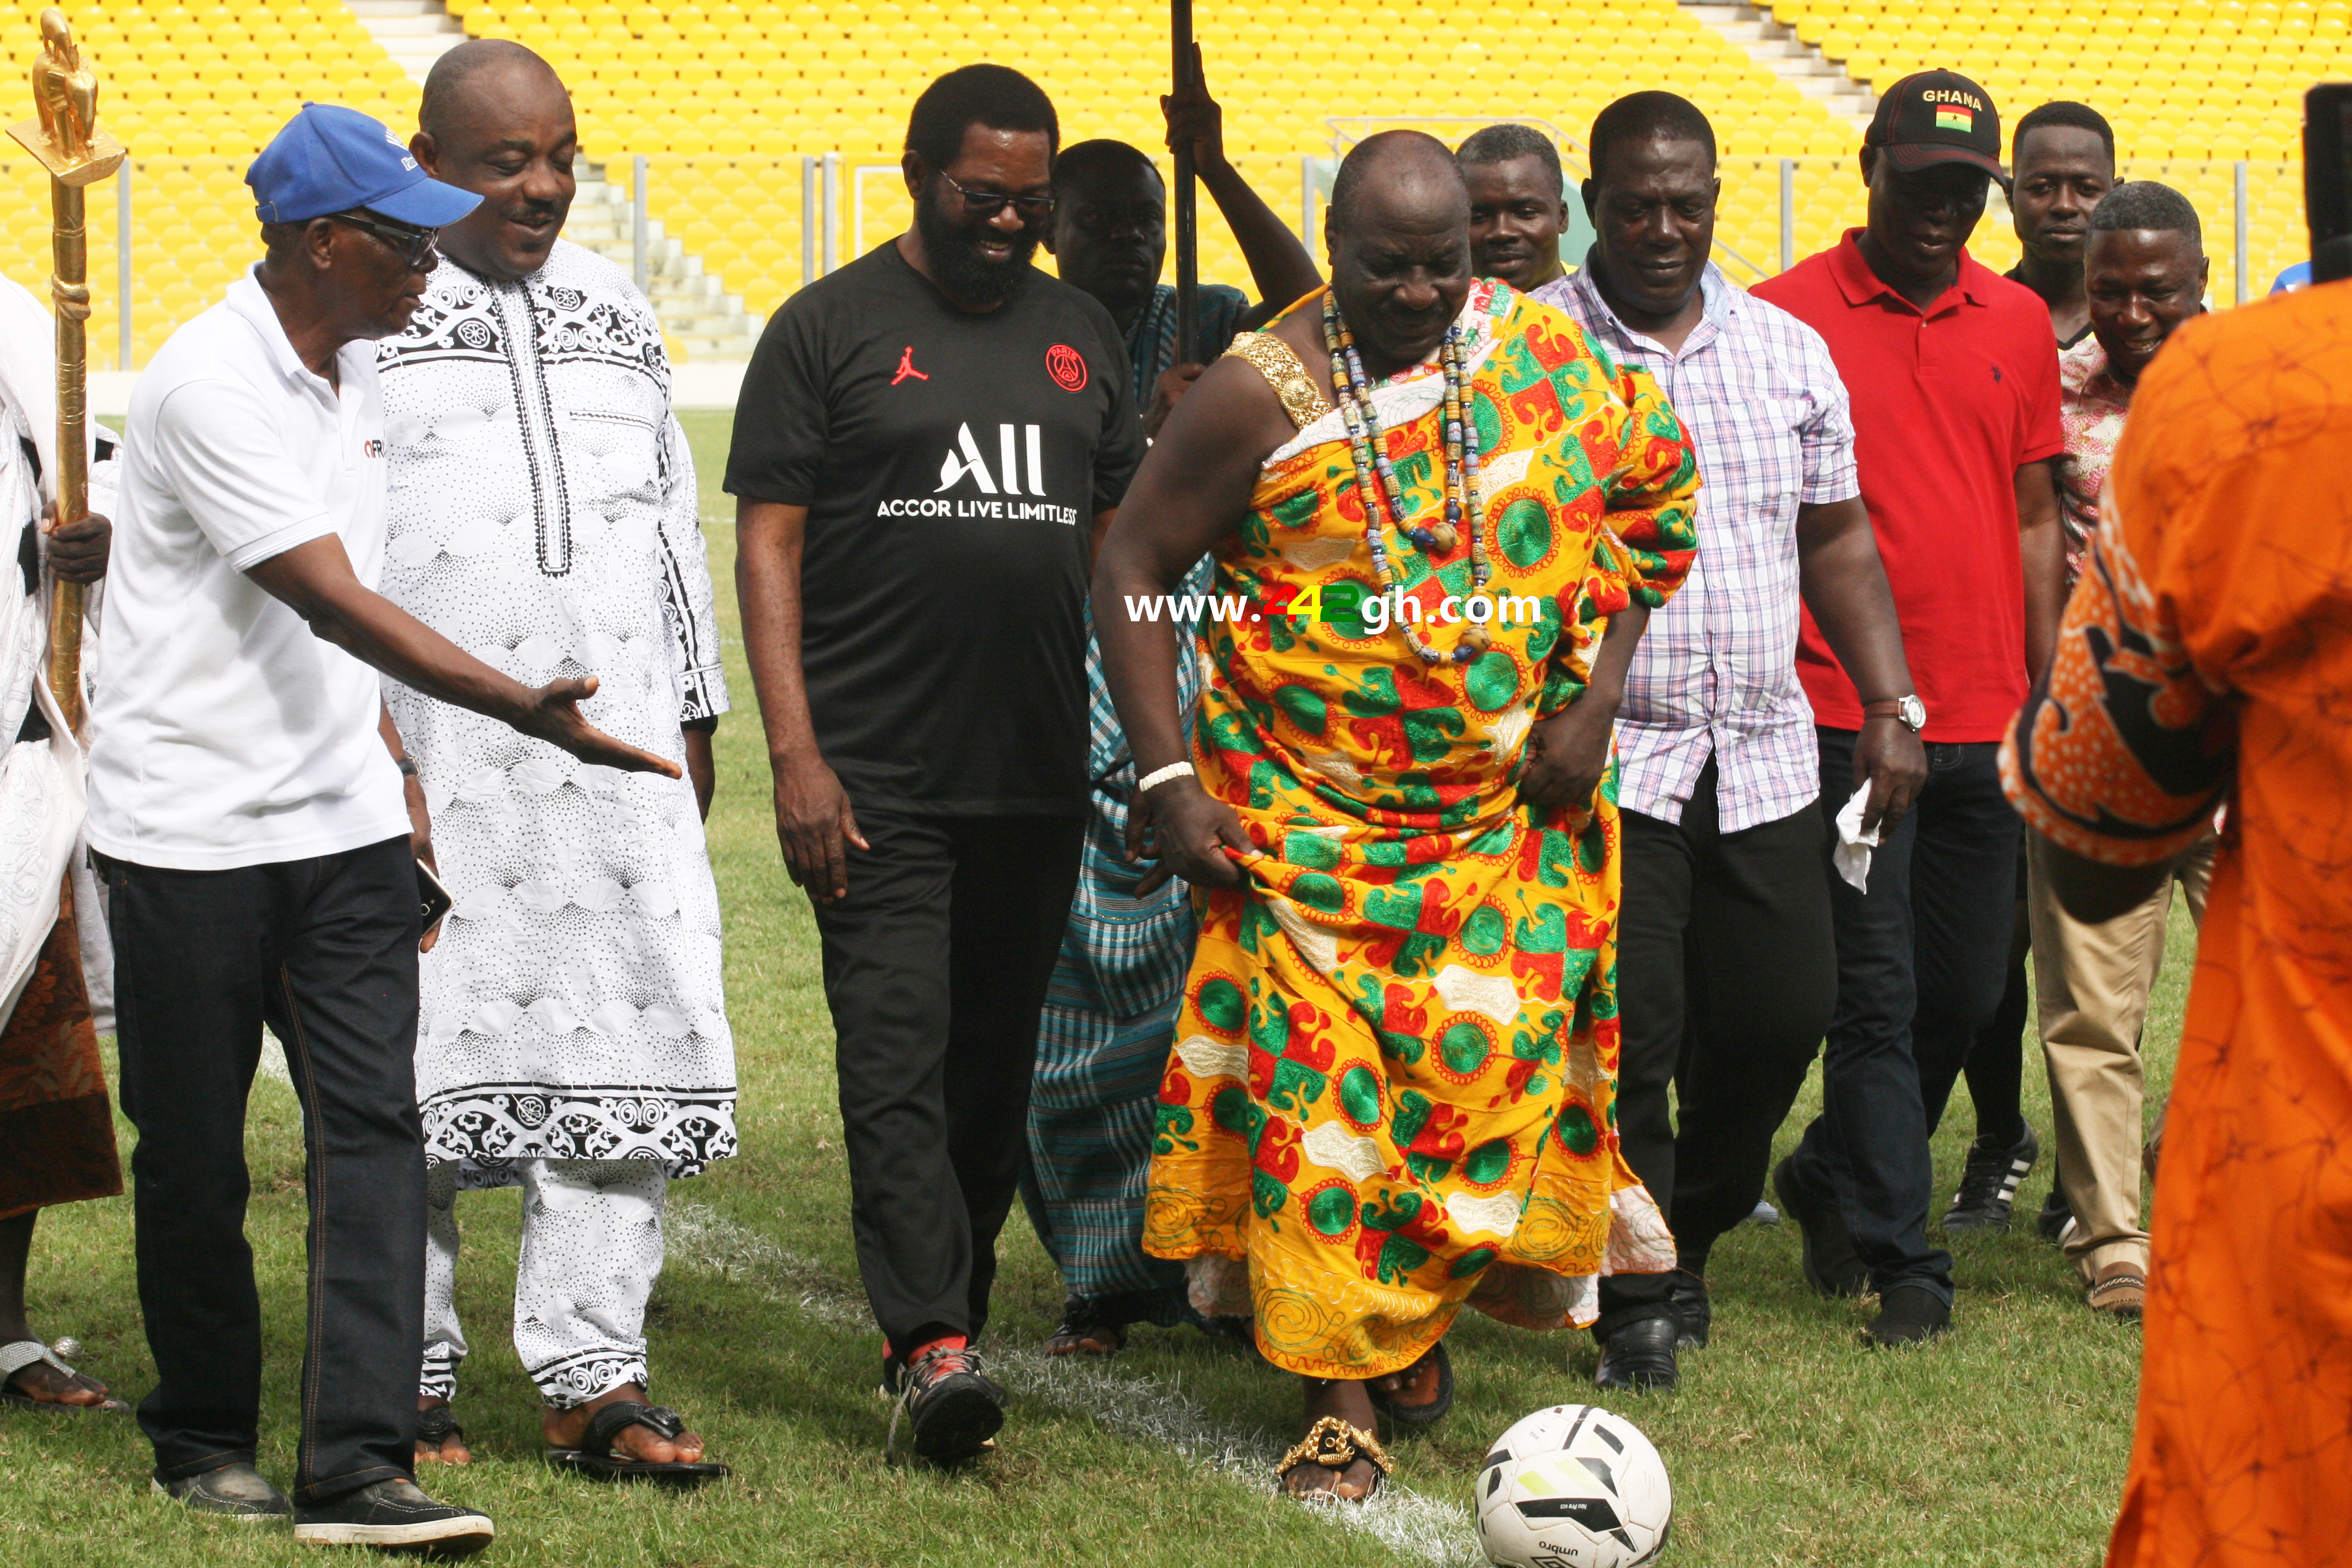 Nii Akwashong - Pictures: Exclusive photos from the Homowo cup between Hearts of Oak and Great Olympics